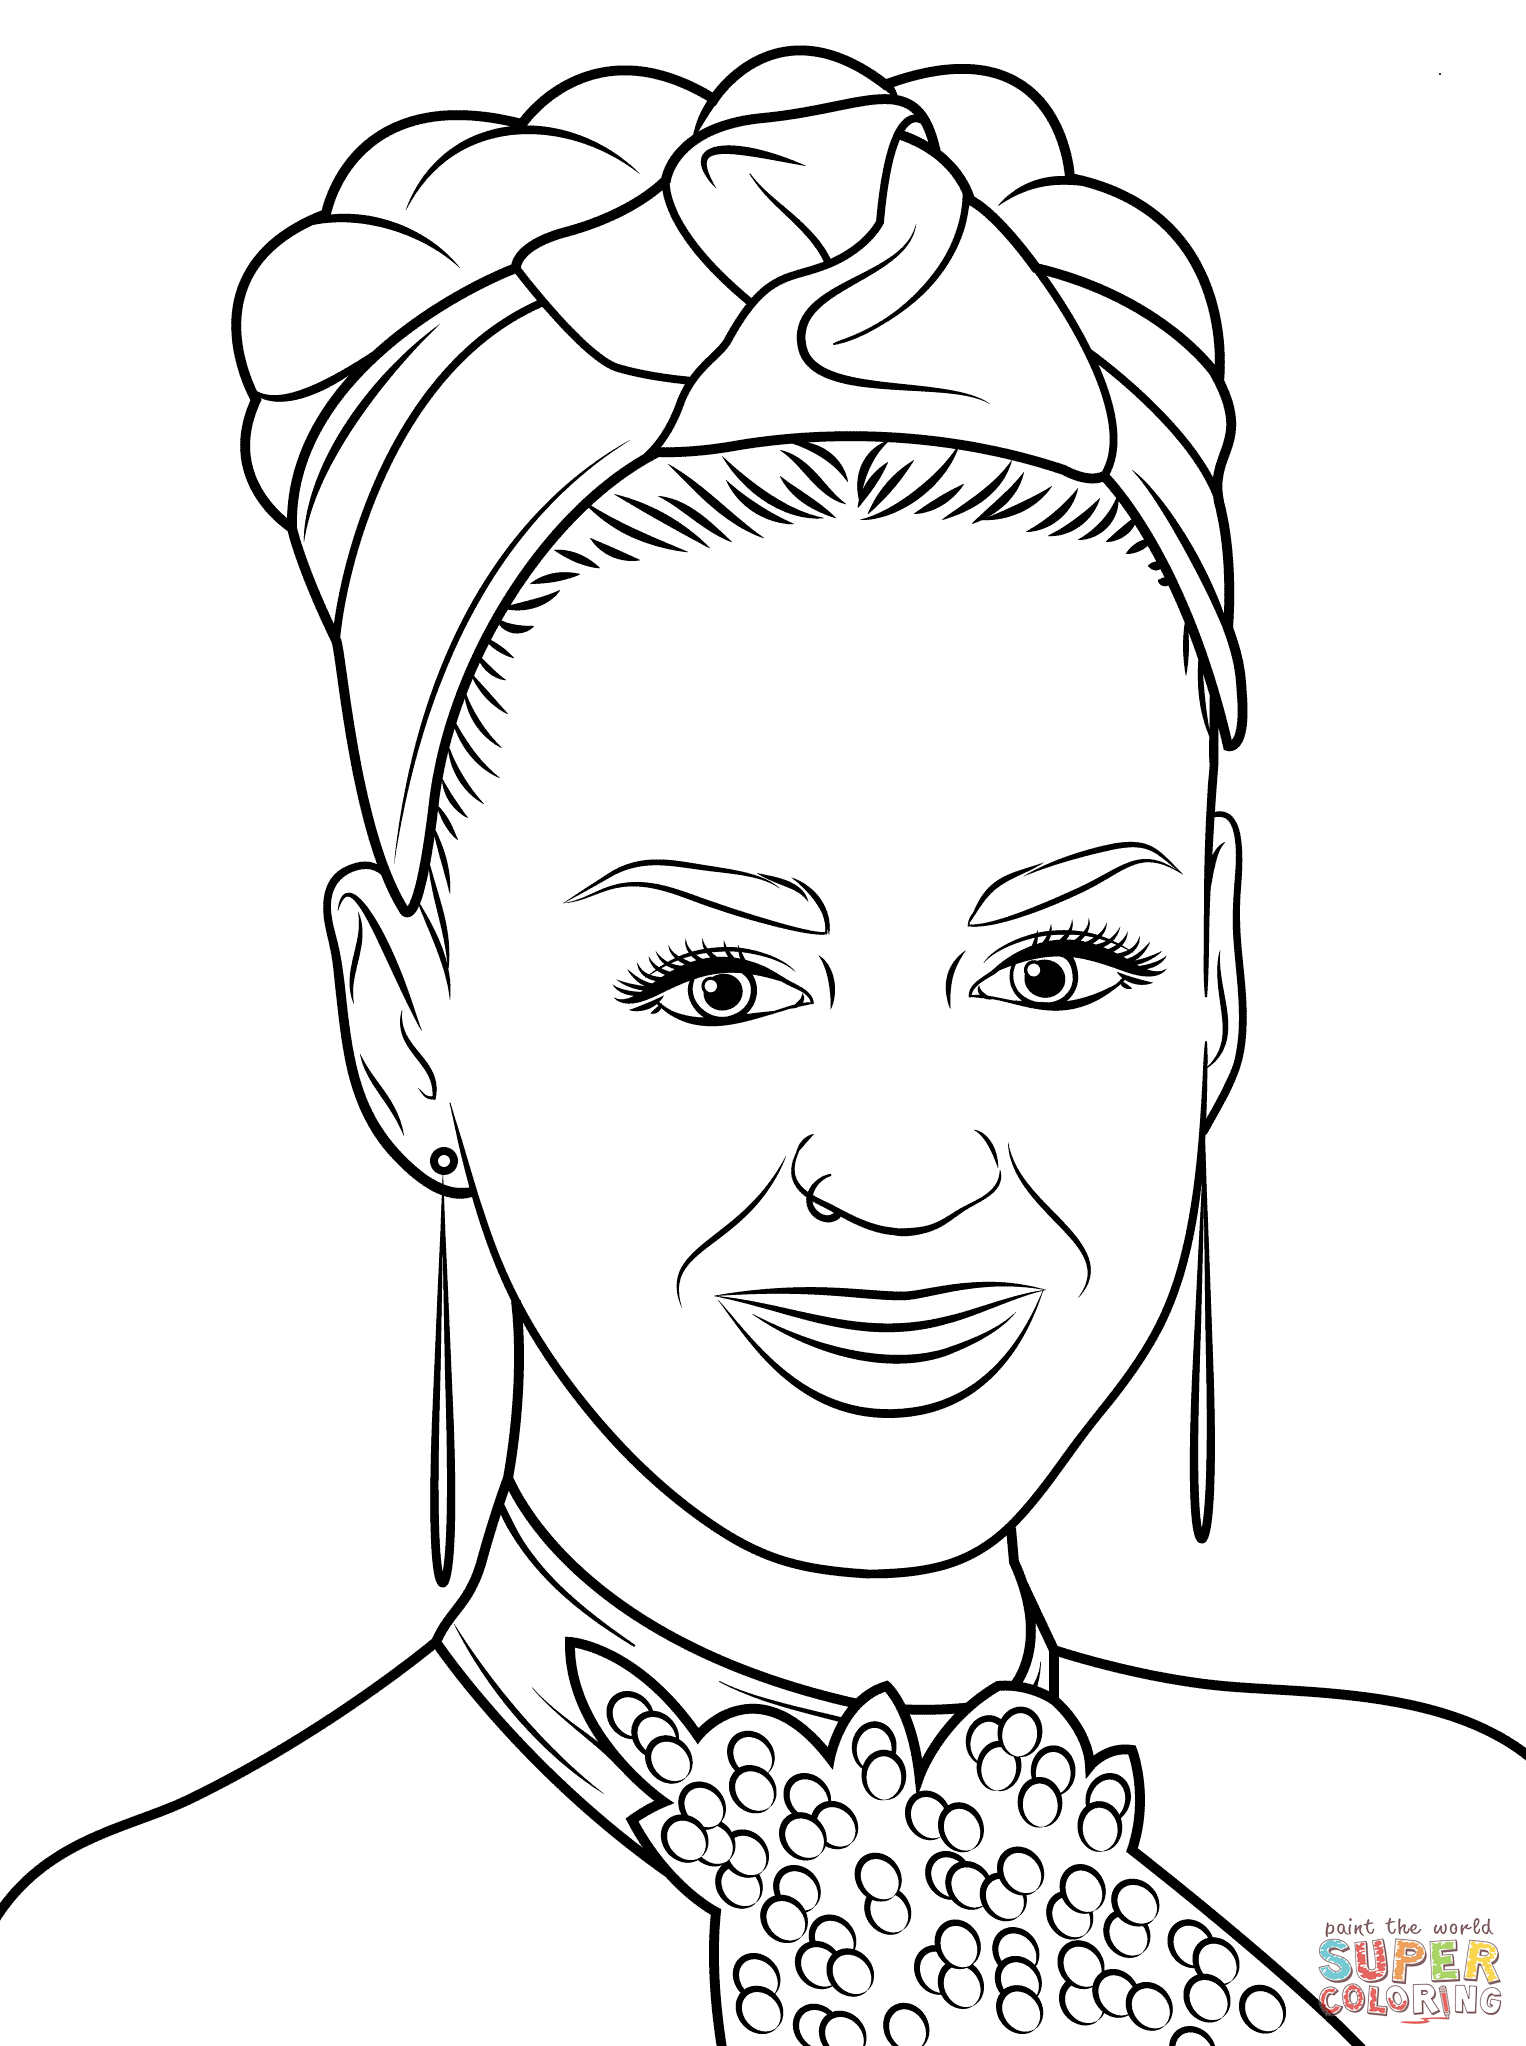 Click the katy perry coloring pages